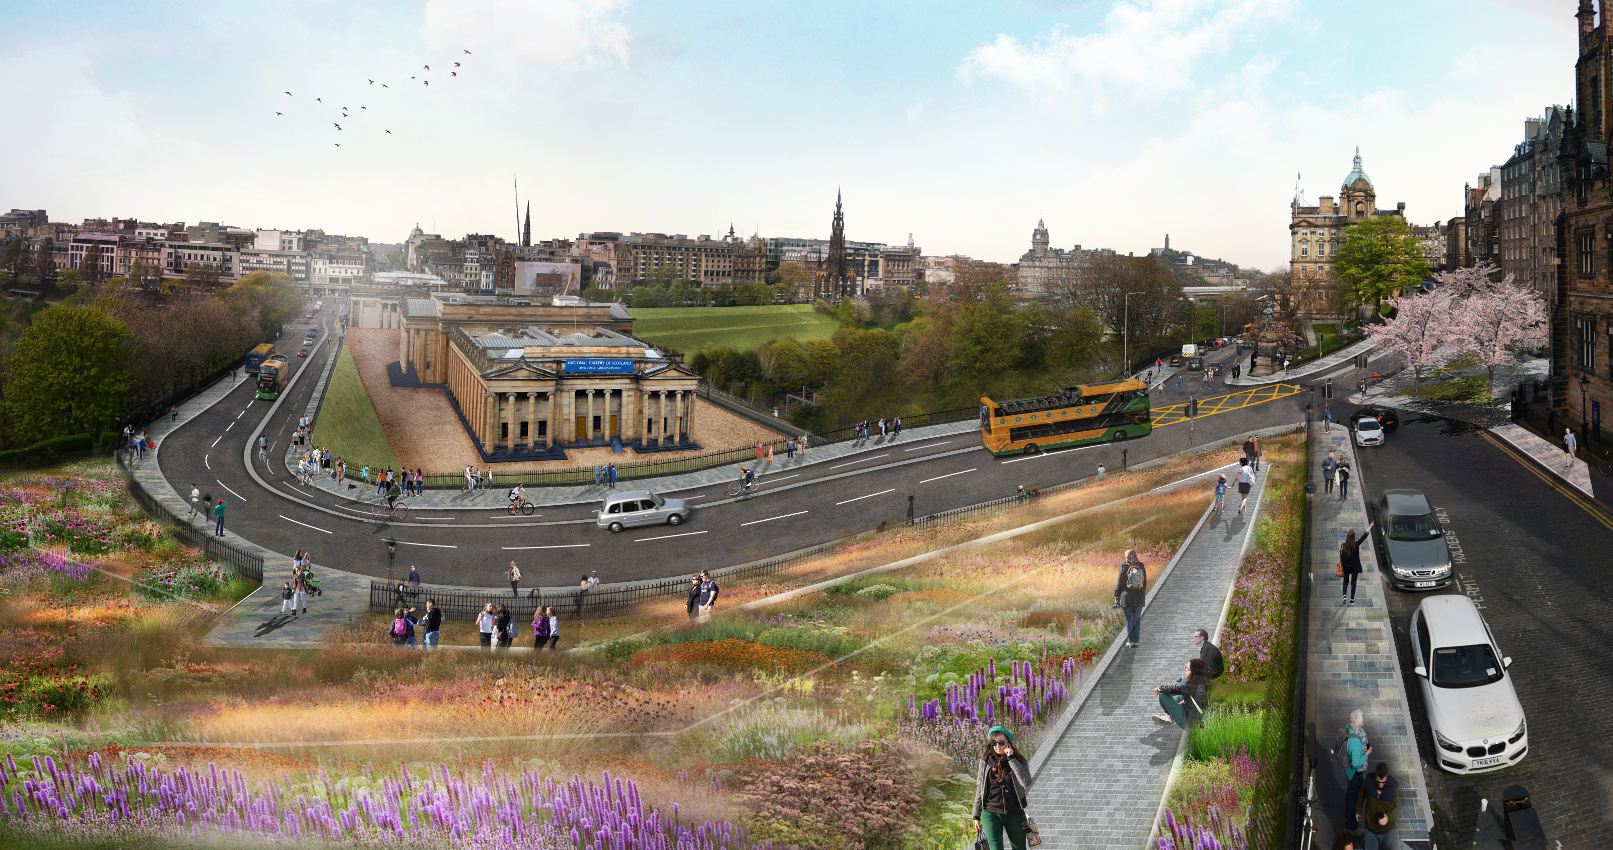 A visualisation of the proposed designs overlooking the Mound